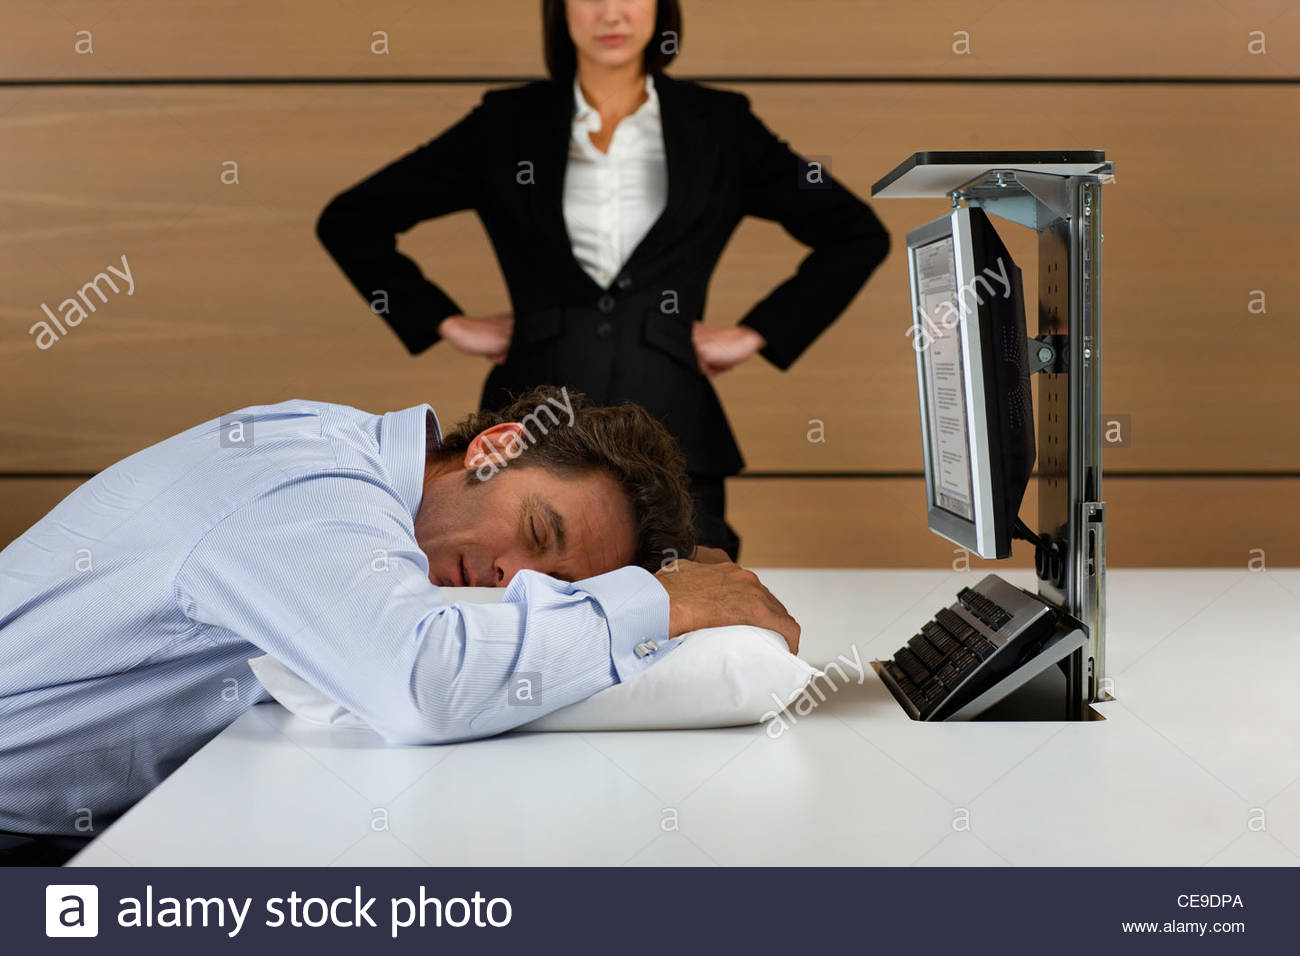 Angry businesswoman looking down at businessman sleeping on pillow at desk - Stock Image